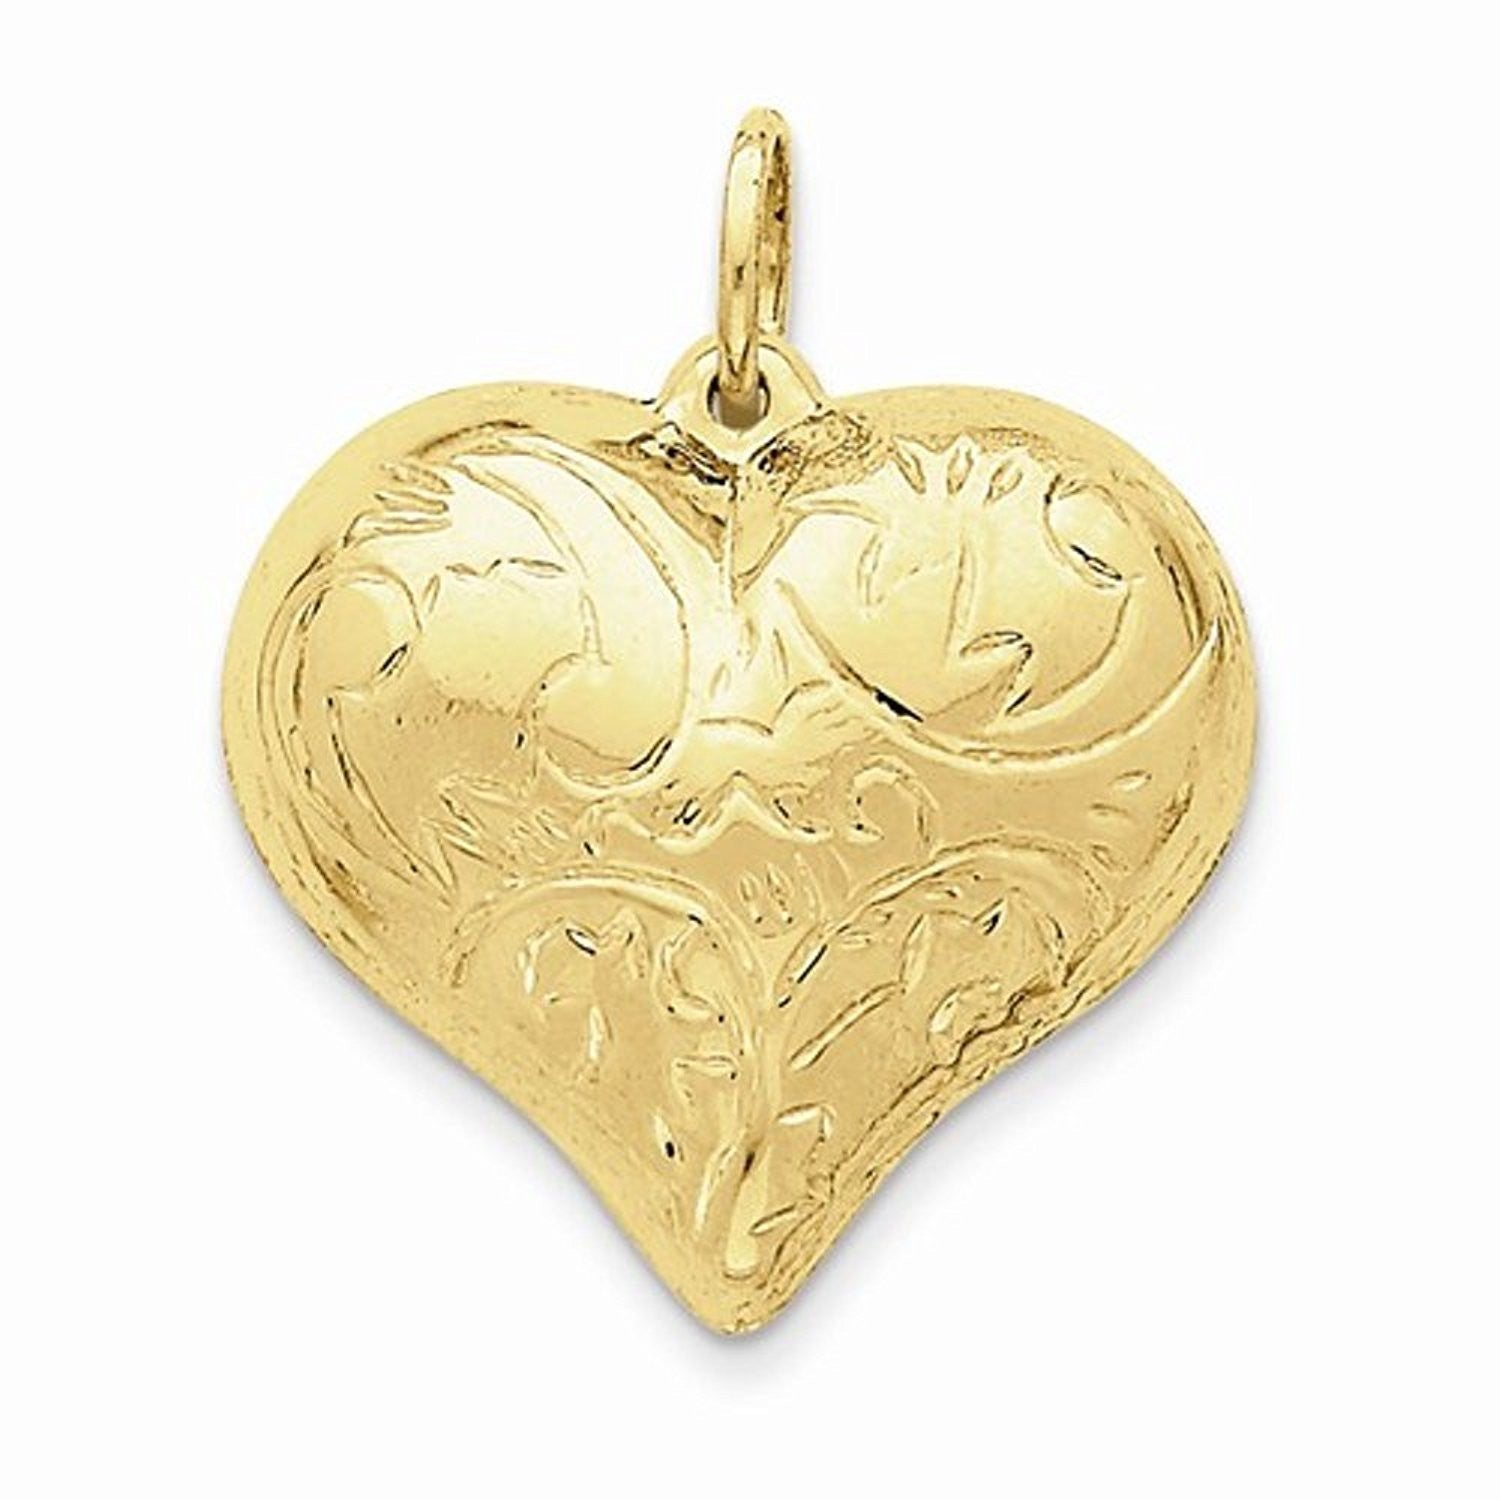 14k Yellow Gold Scrolled Puffy Heart 3D Hollow Pendant Charm